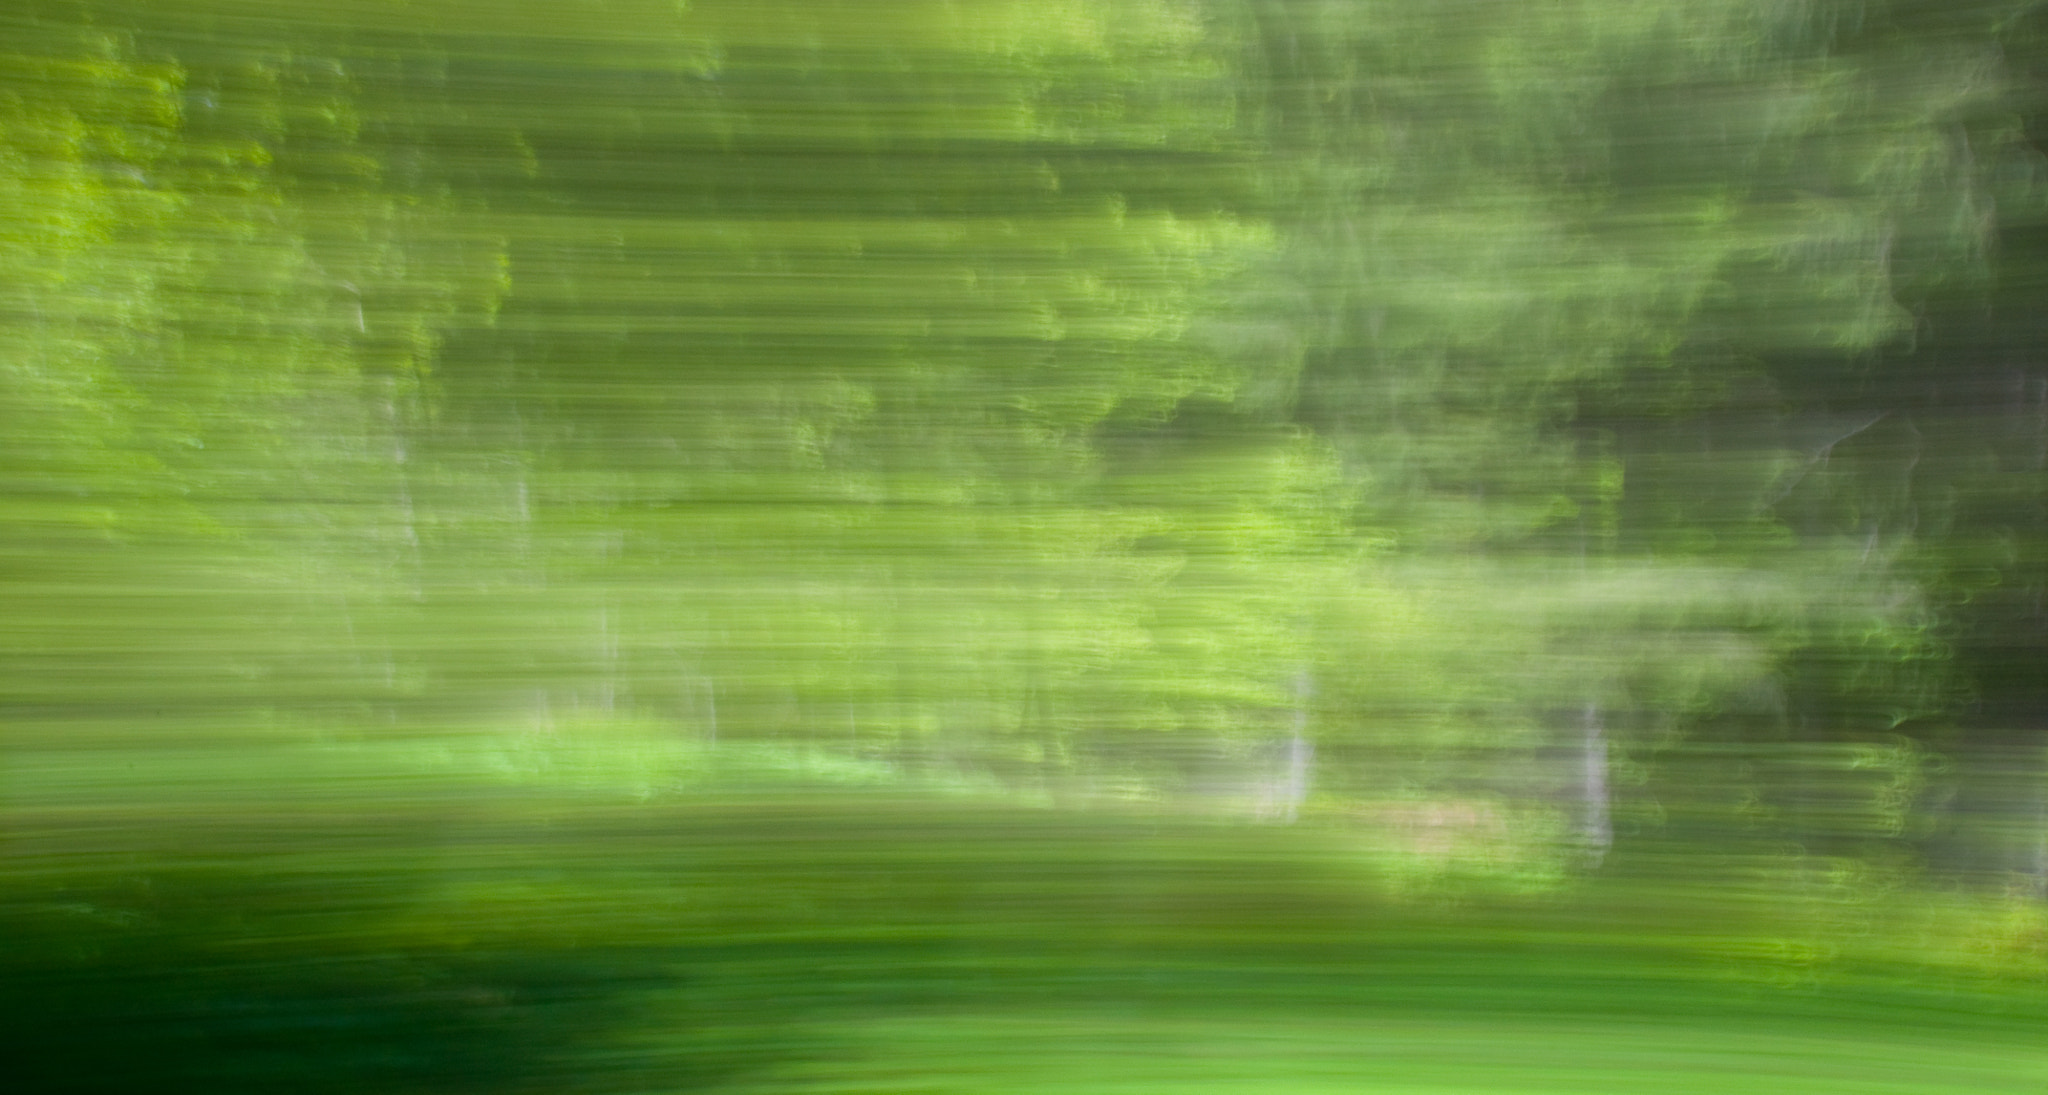 Photograph Green in Motion by Bianca Fuhrmann on 500px